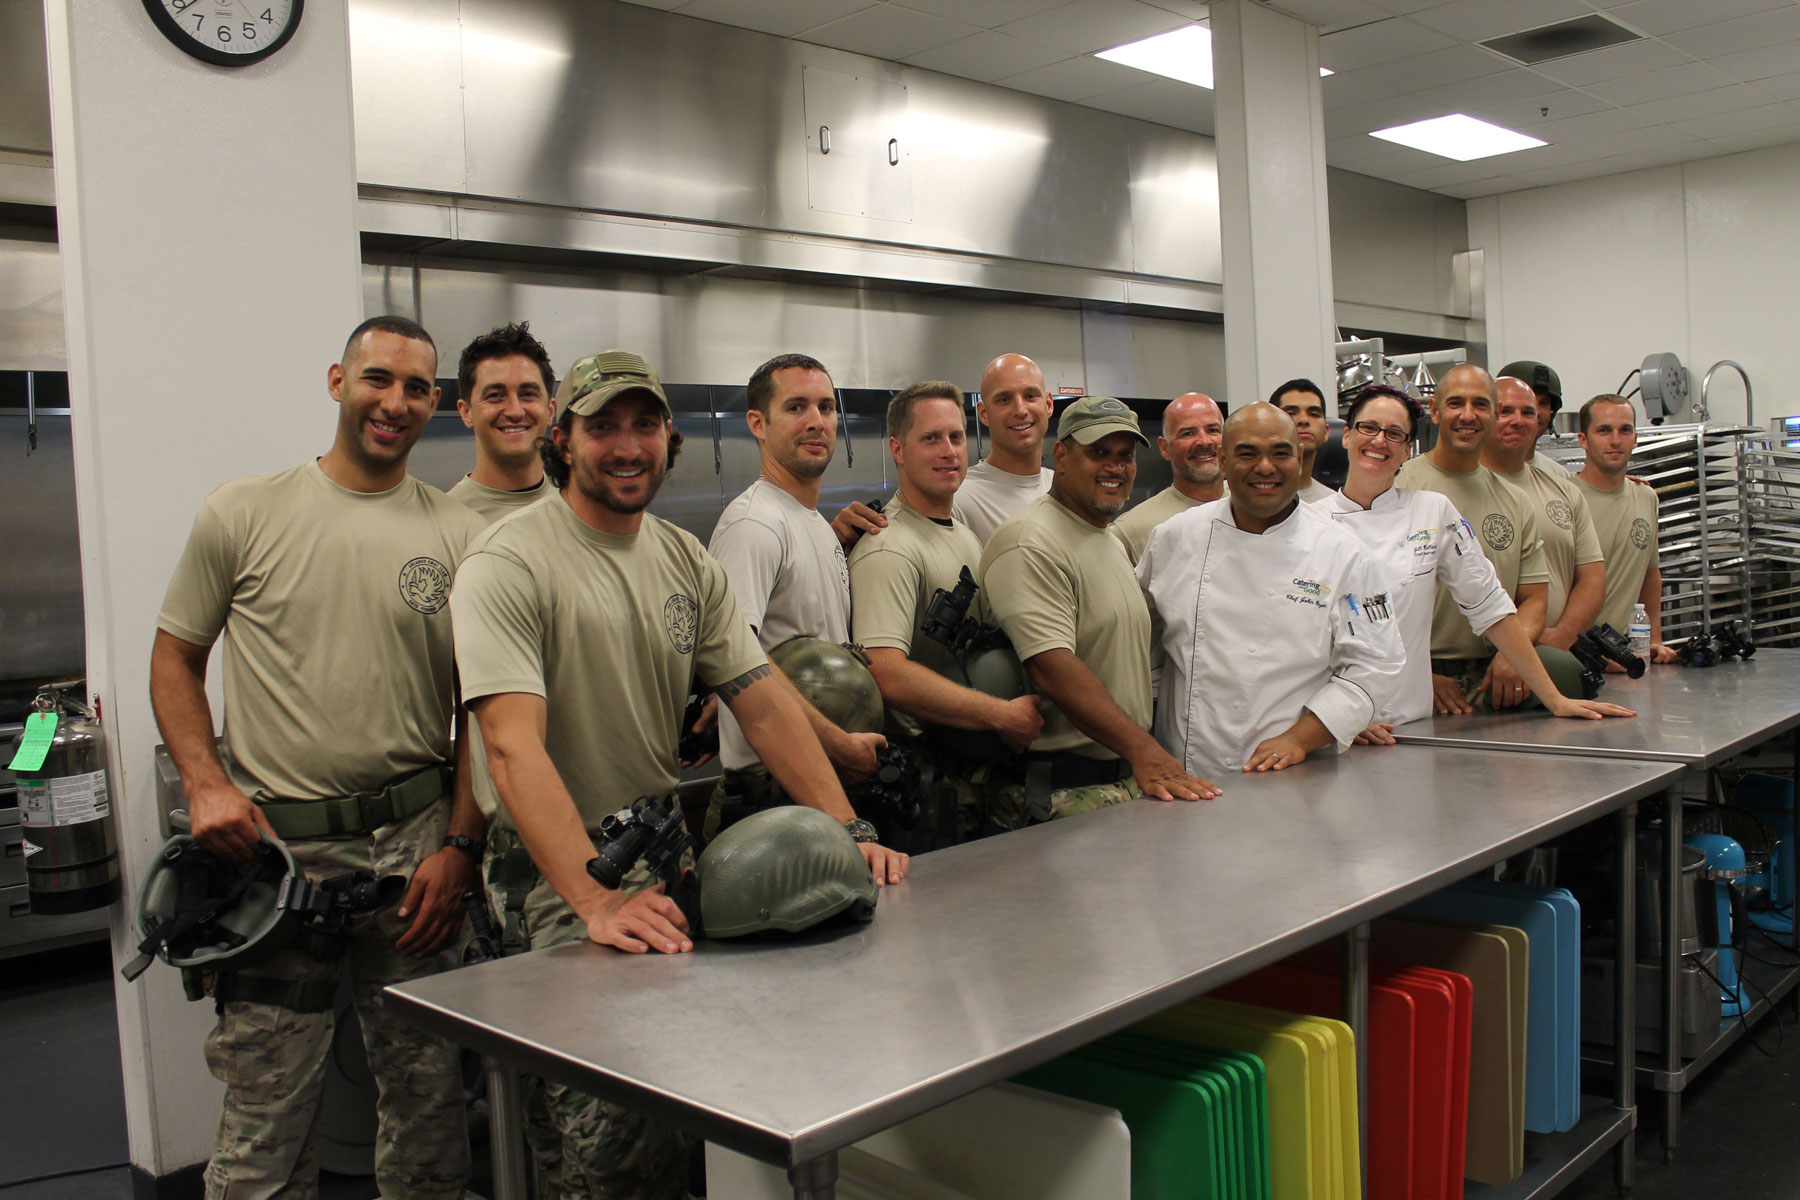 the Orlando Police Department SWAT team lined up in the kitchen with the chef's at the Dining in the Dark event